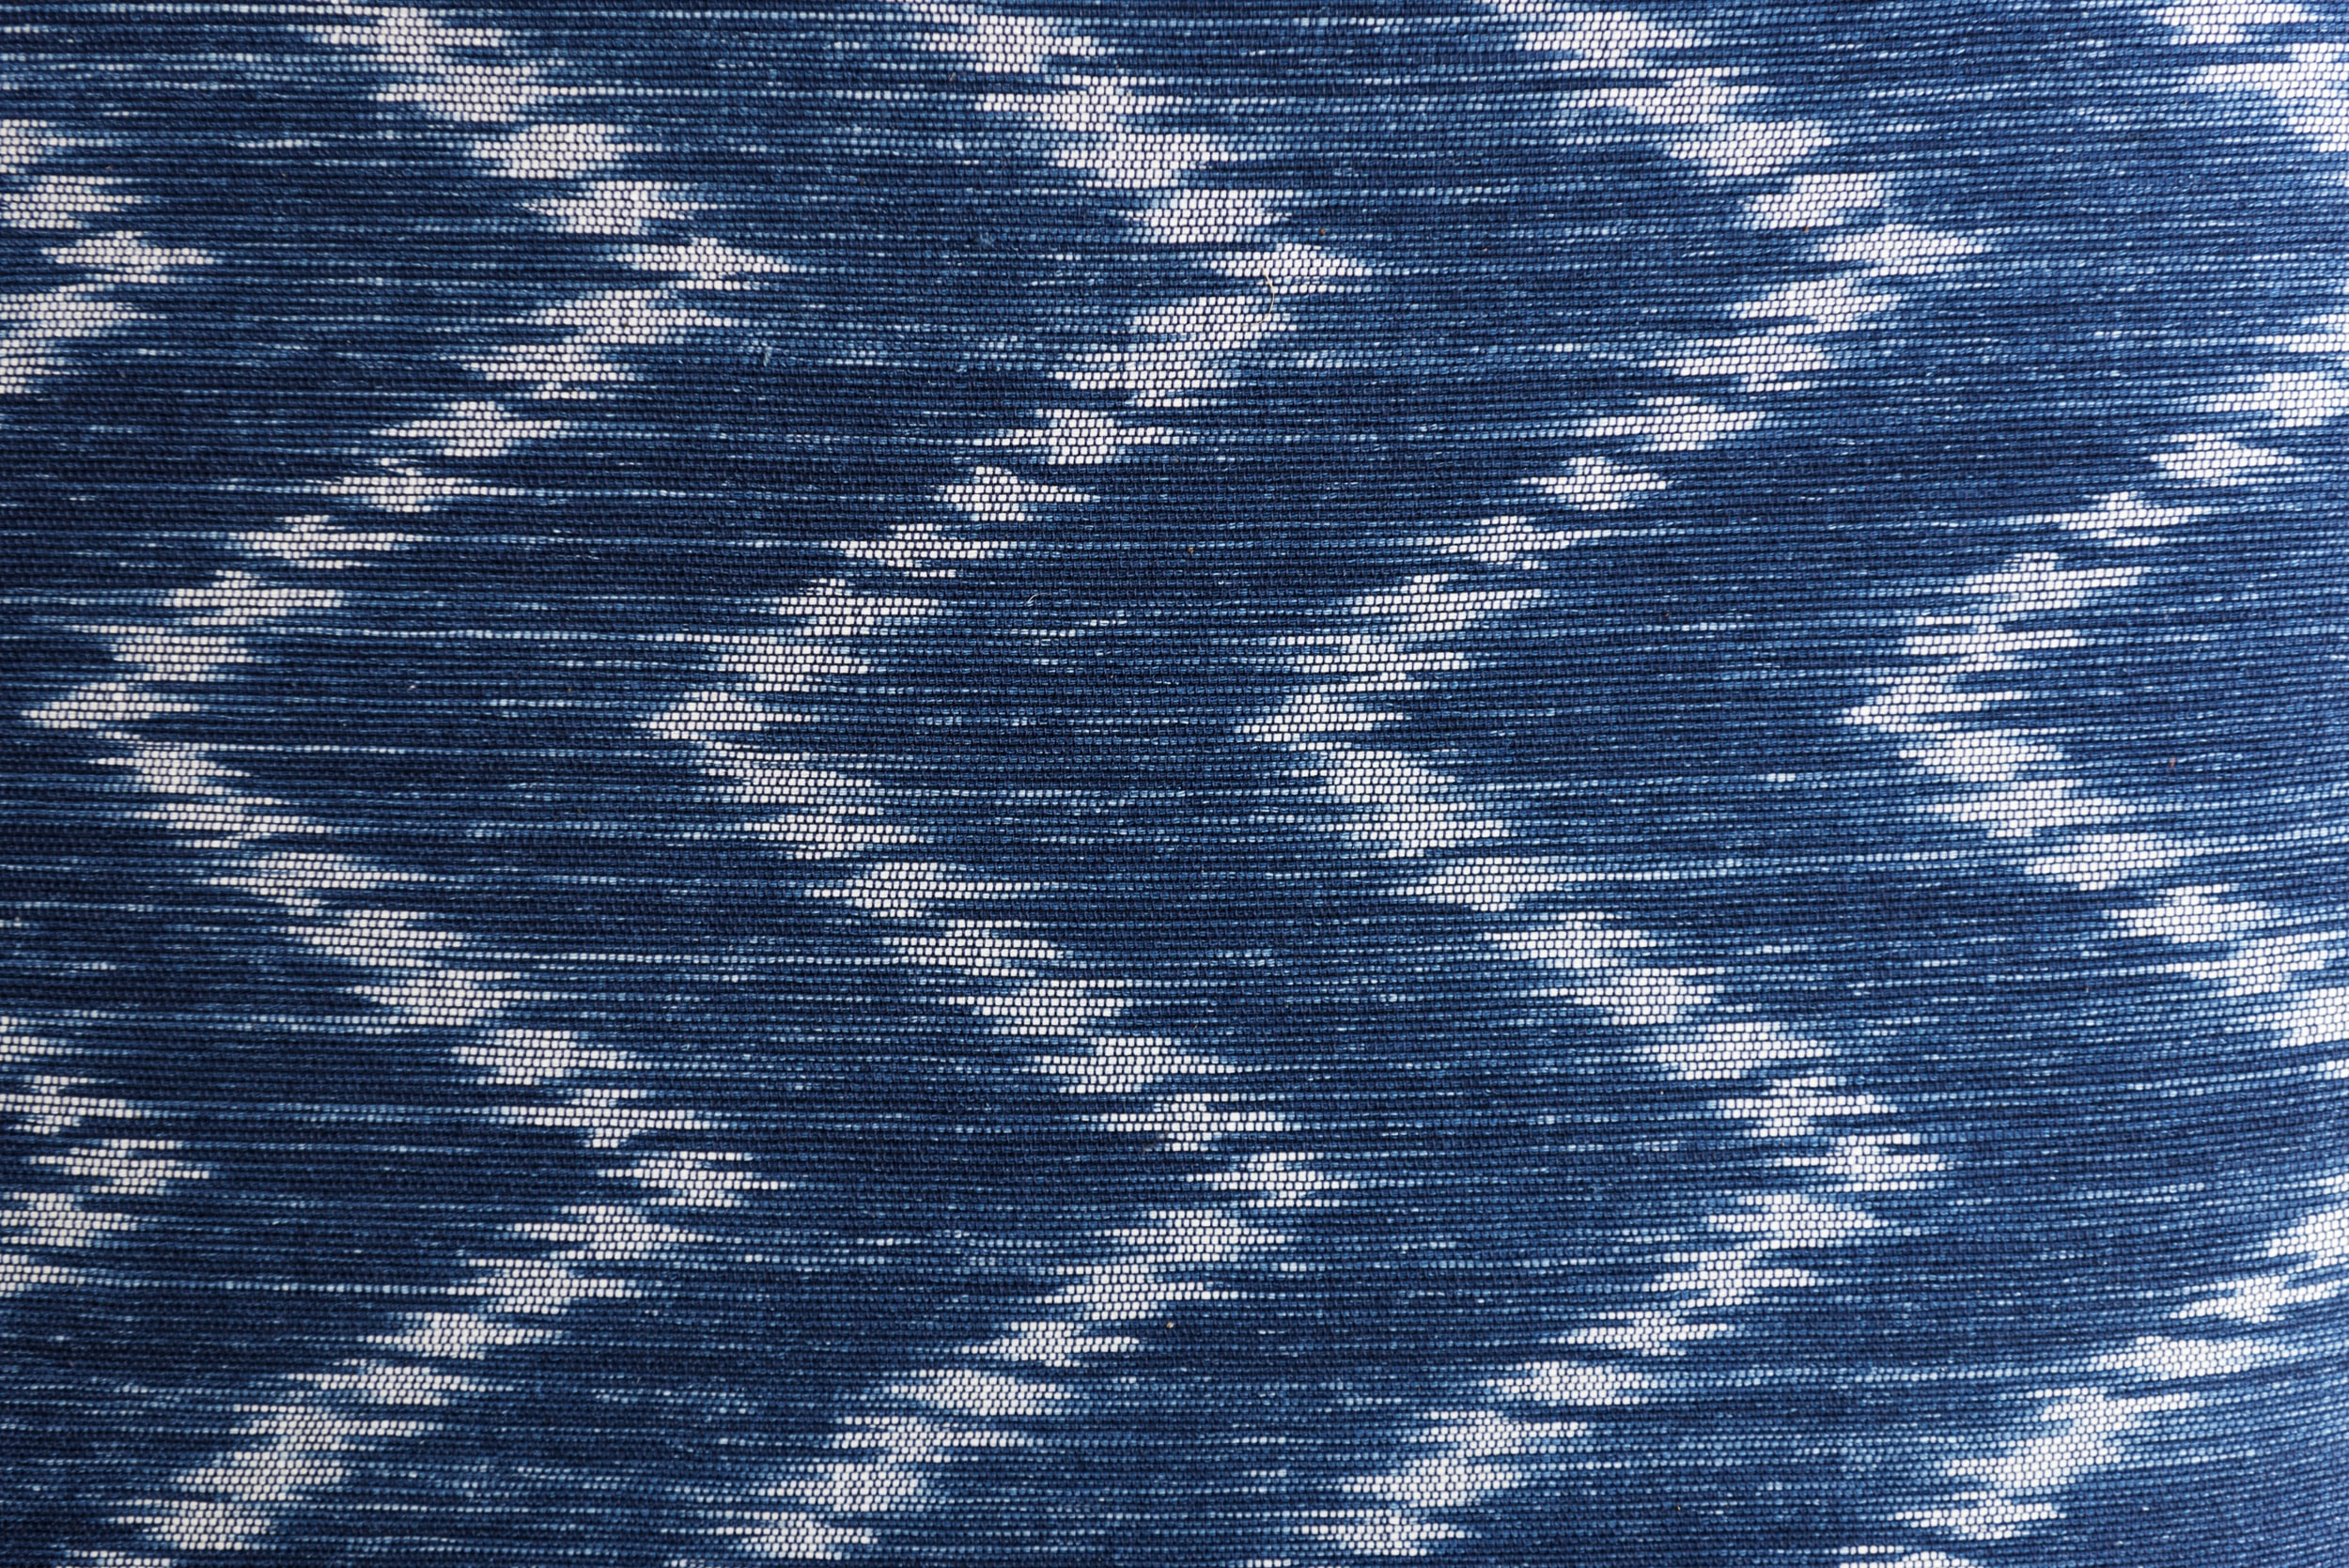 blue and white chevron print textile